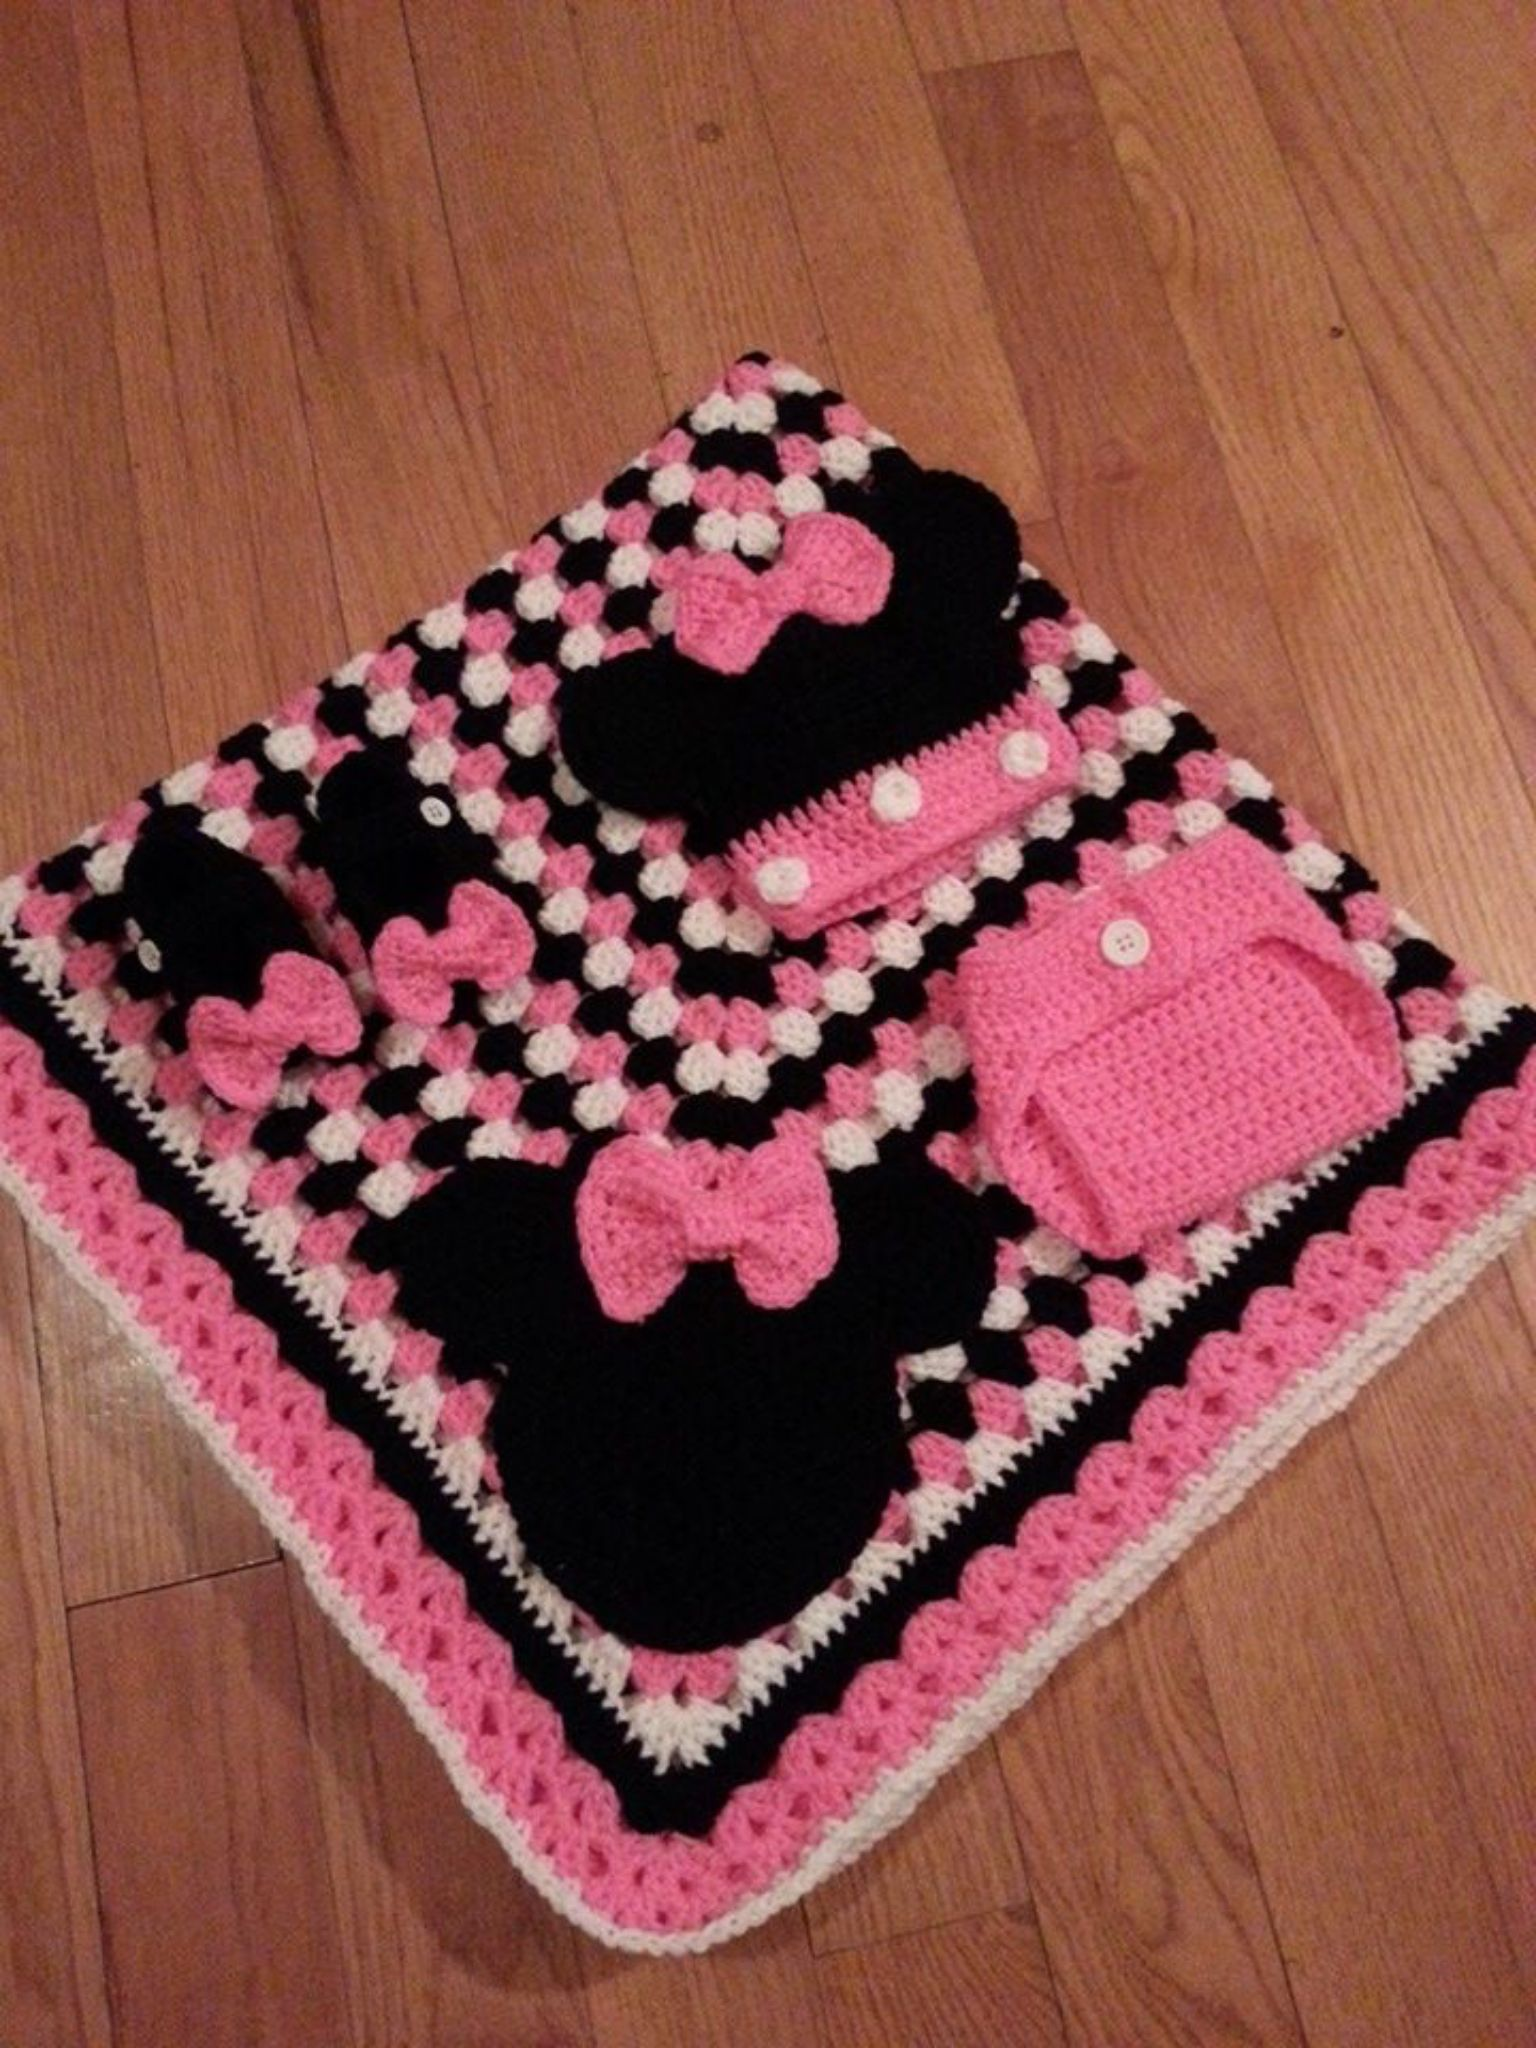 Minnie Mouse Crochet Blanket Pattern Year Of Clean Water